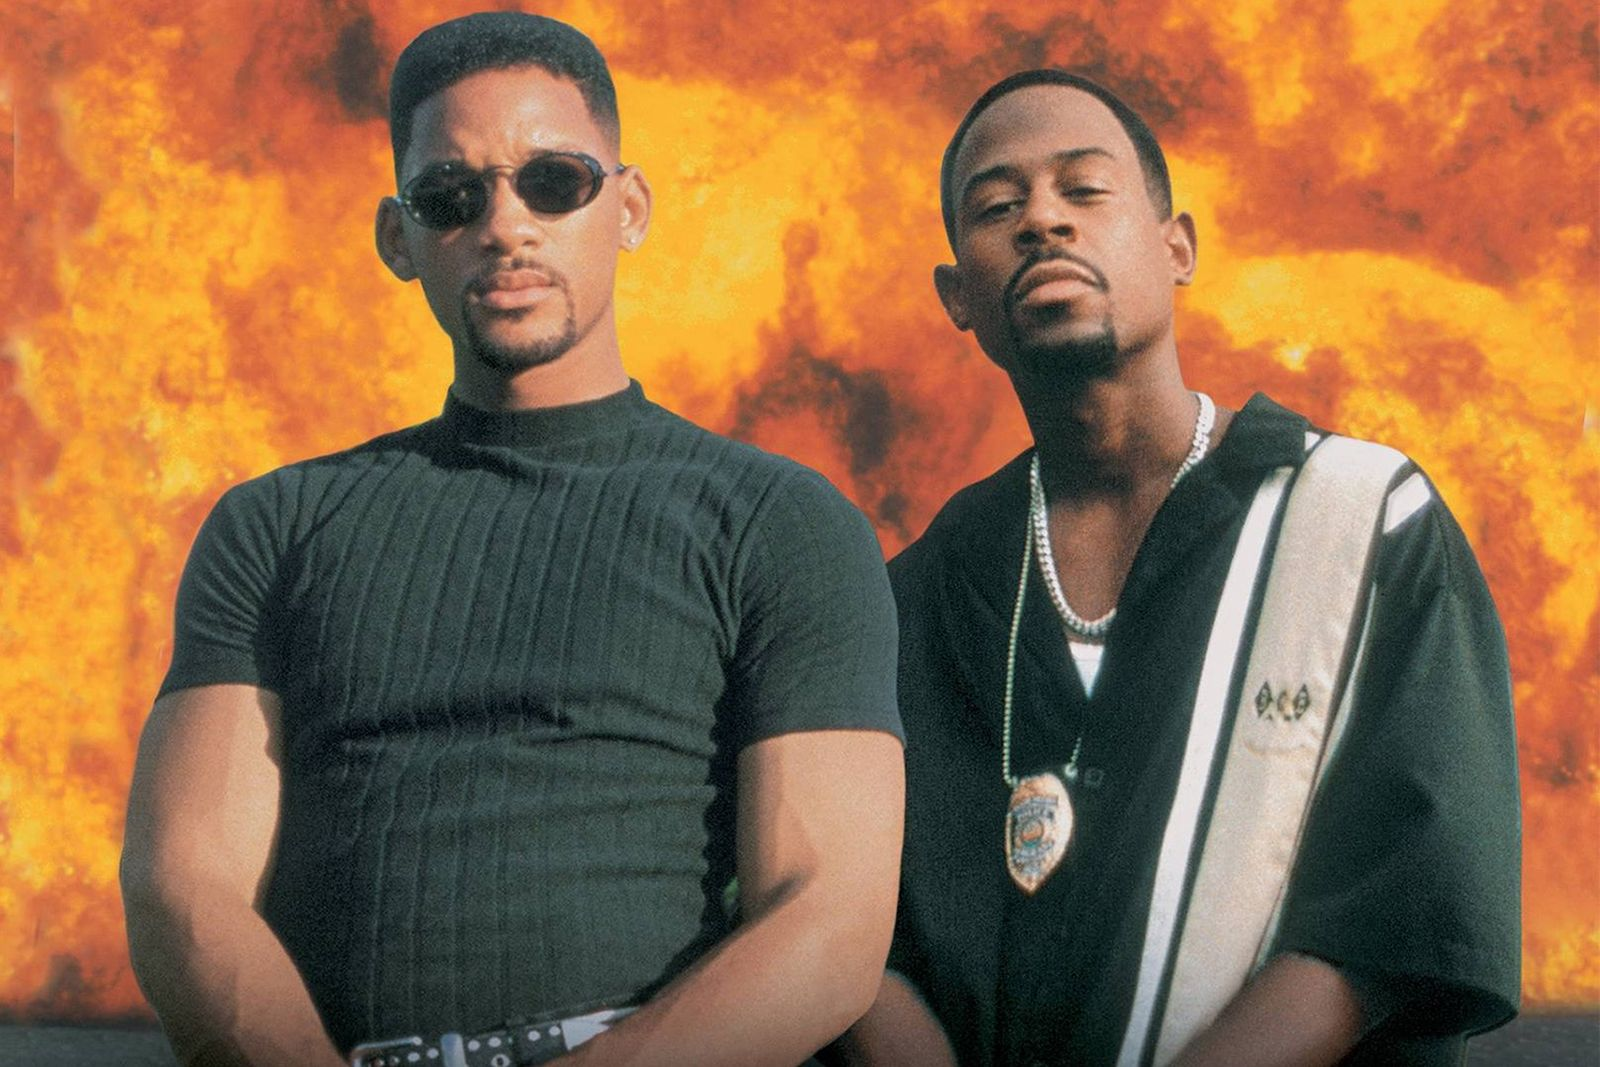 bad boys for life release date Martin Lawrence Will Smith bad boys 3